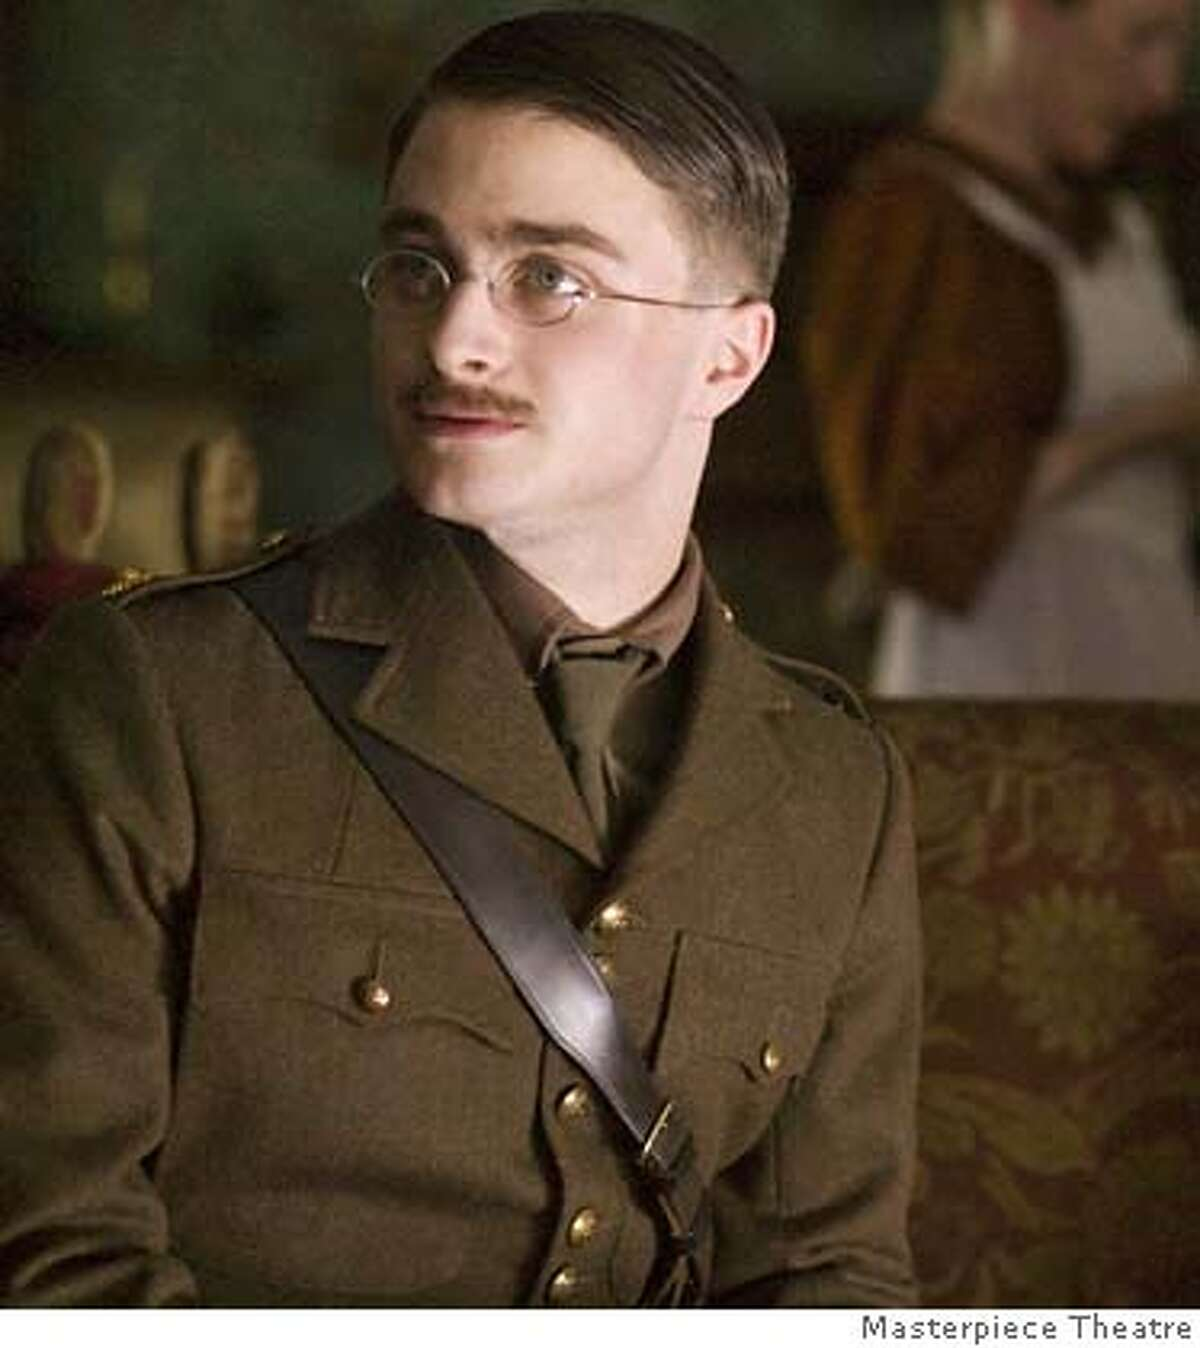 ###Live Caption:Daniel Radcliffe (Harry Potter) stars as Jack - son of British literary giant Rudyard Kipling - who triggers a bitter family conflict when he joins the Irish Guard at the outset of World War I.###Caption History:Daniel Radcliffe (Harry Potter) stars as Jack � son of British literary giant Rudyard Kipling � who triggers a bitter family conflict when he joins the Irish Guard at the outset of World War I.###Notes:###Special Instructions: